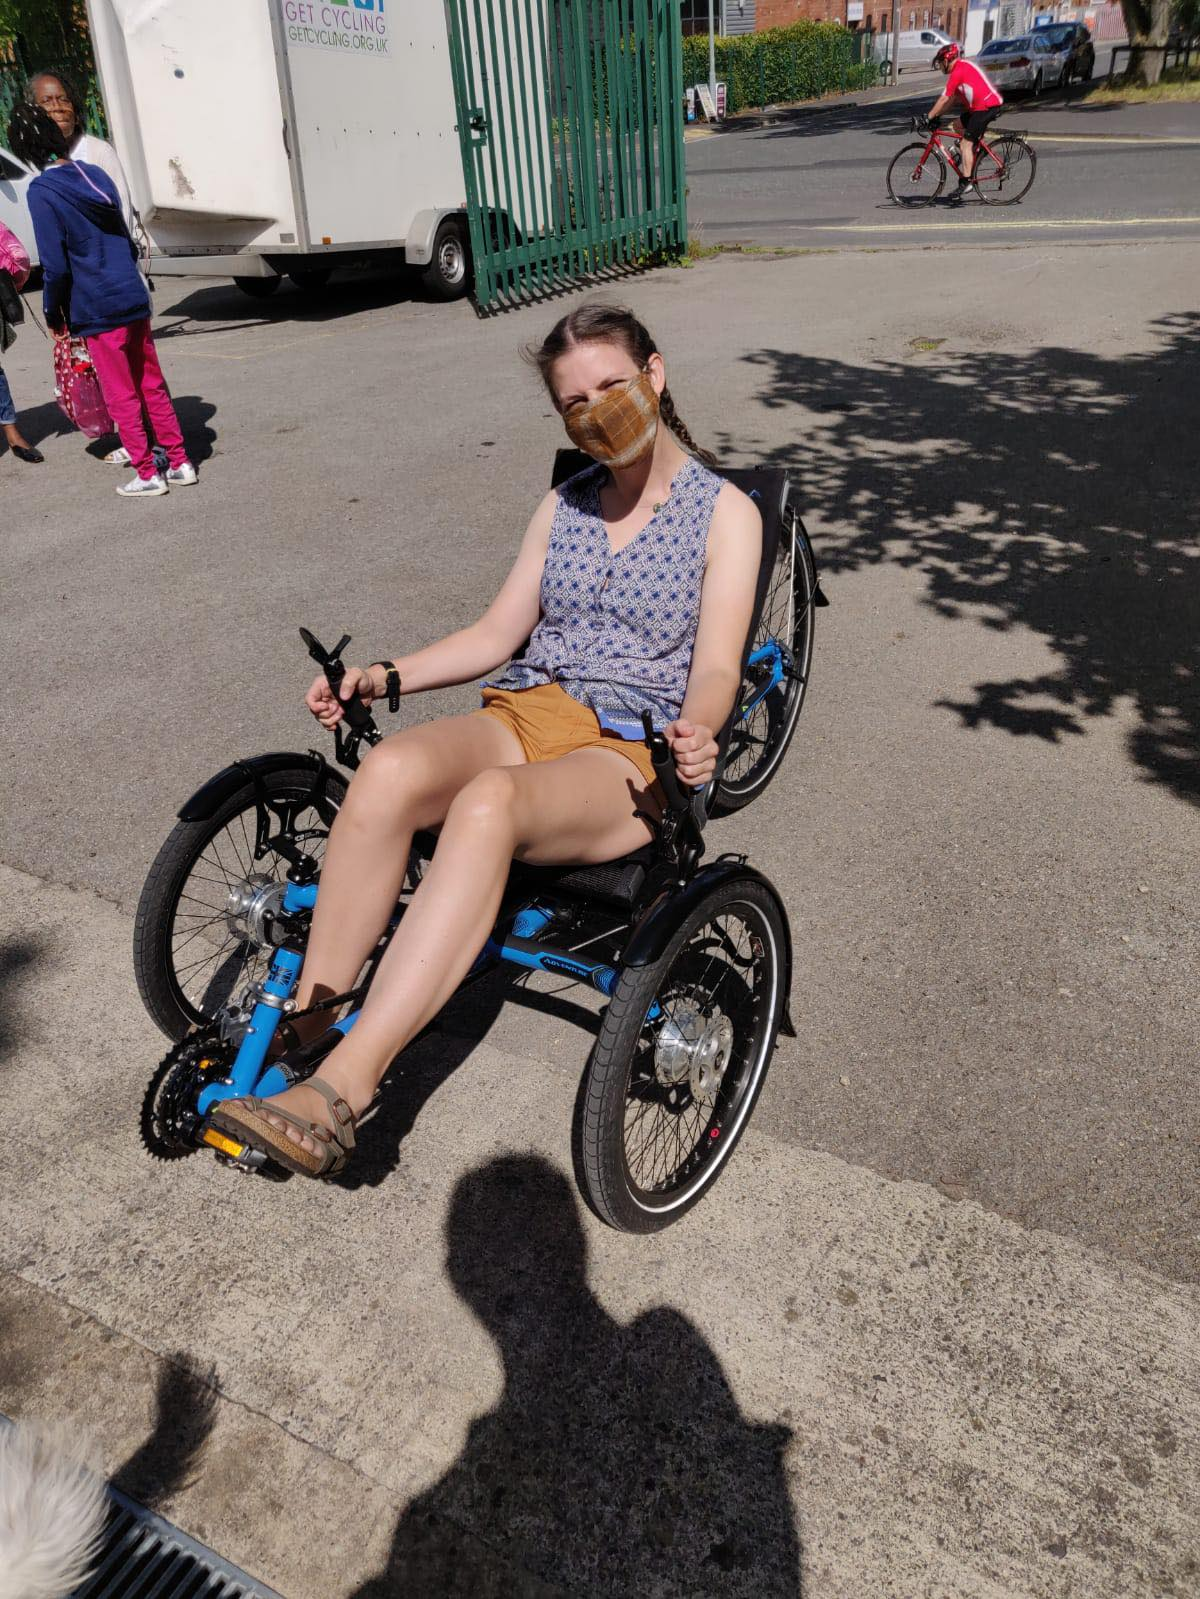 'Cycling is cheap – unless you're disabled': Woman left injured after bike crash wants to make cycling more accessible, The Manc